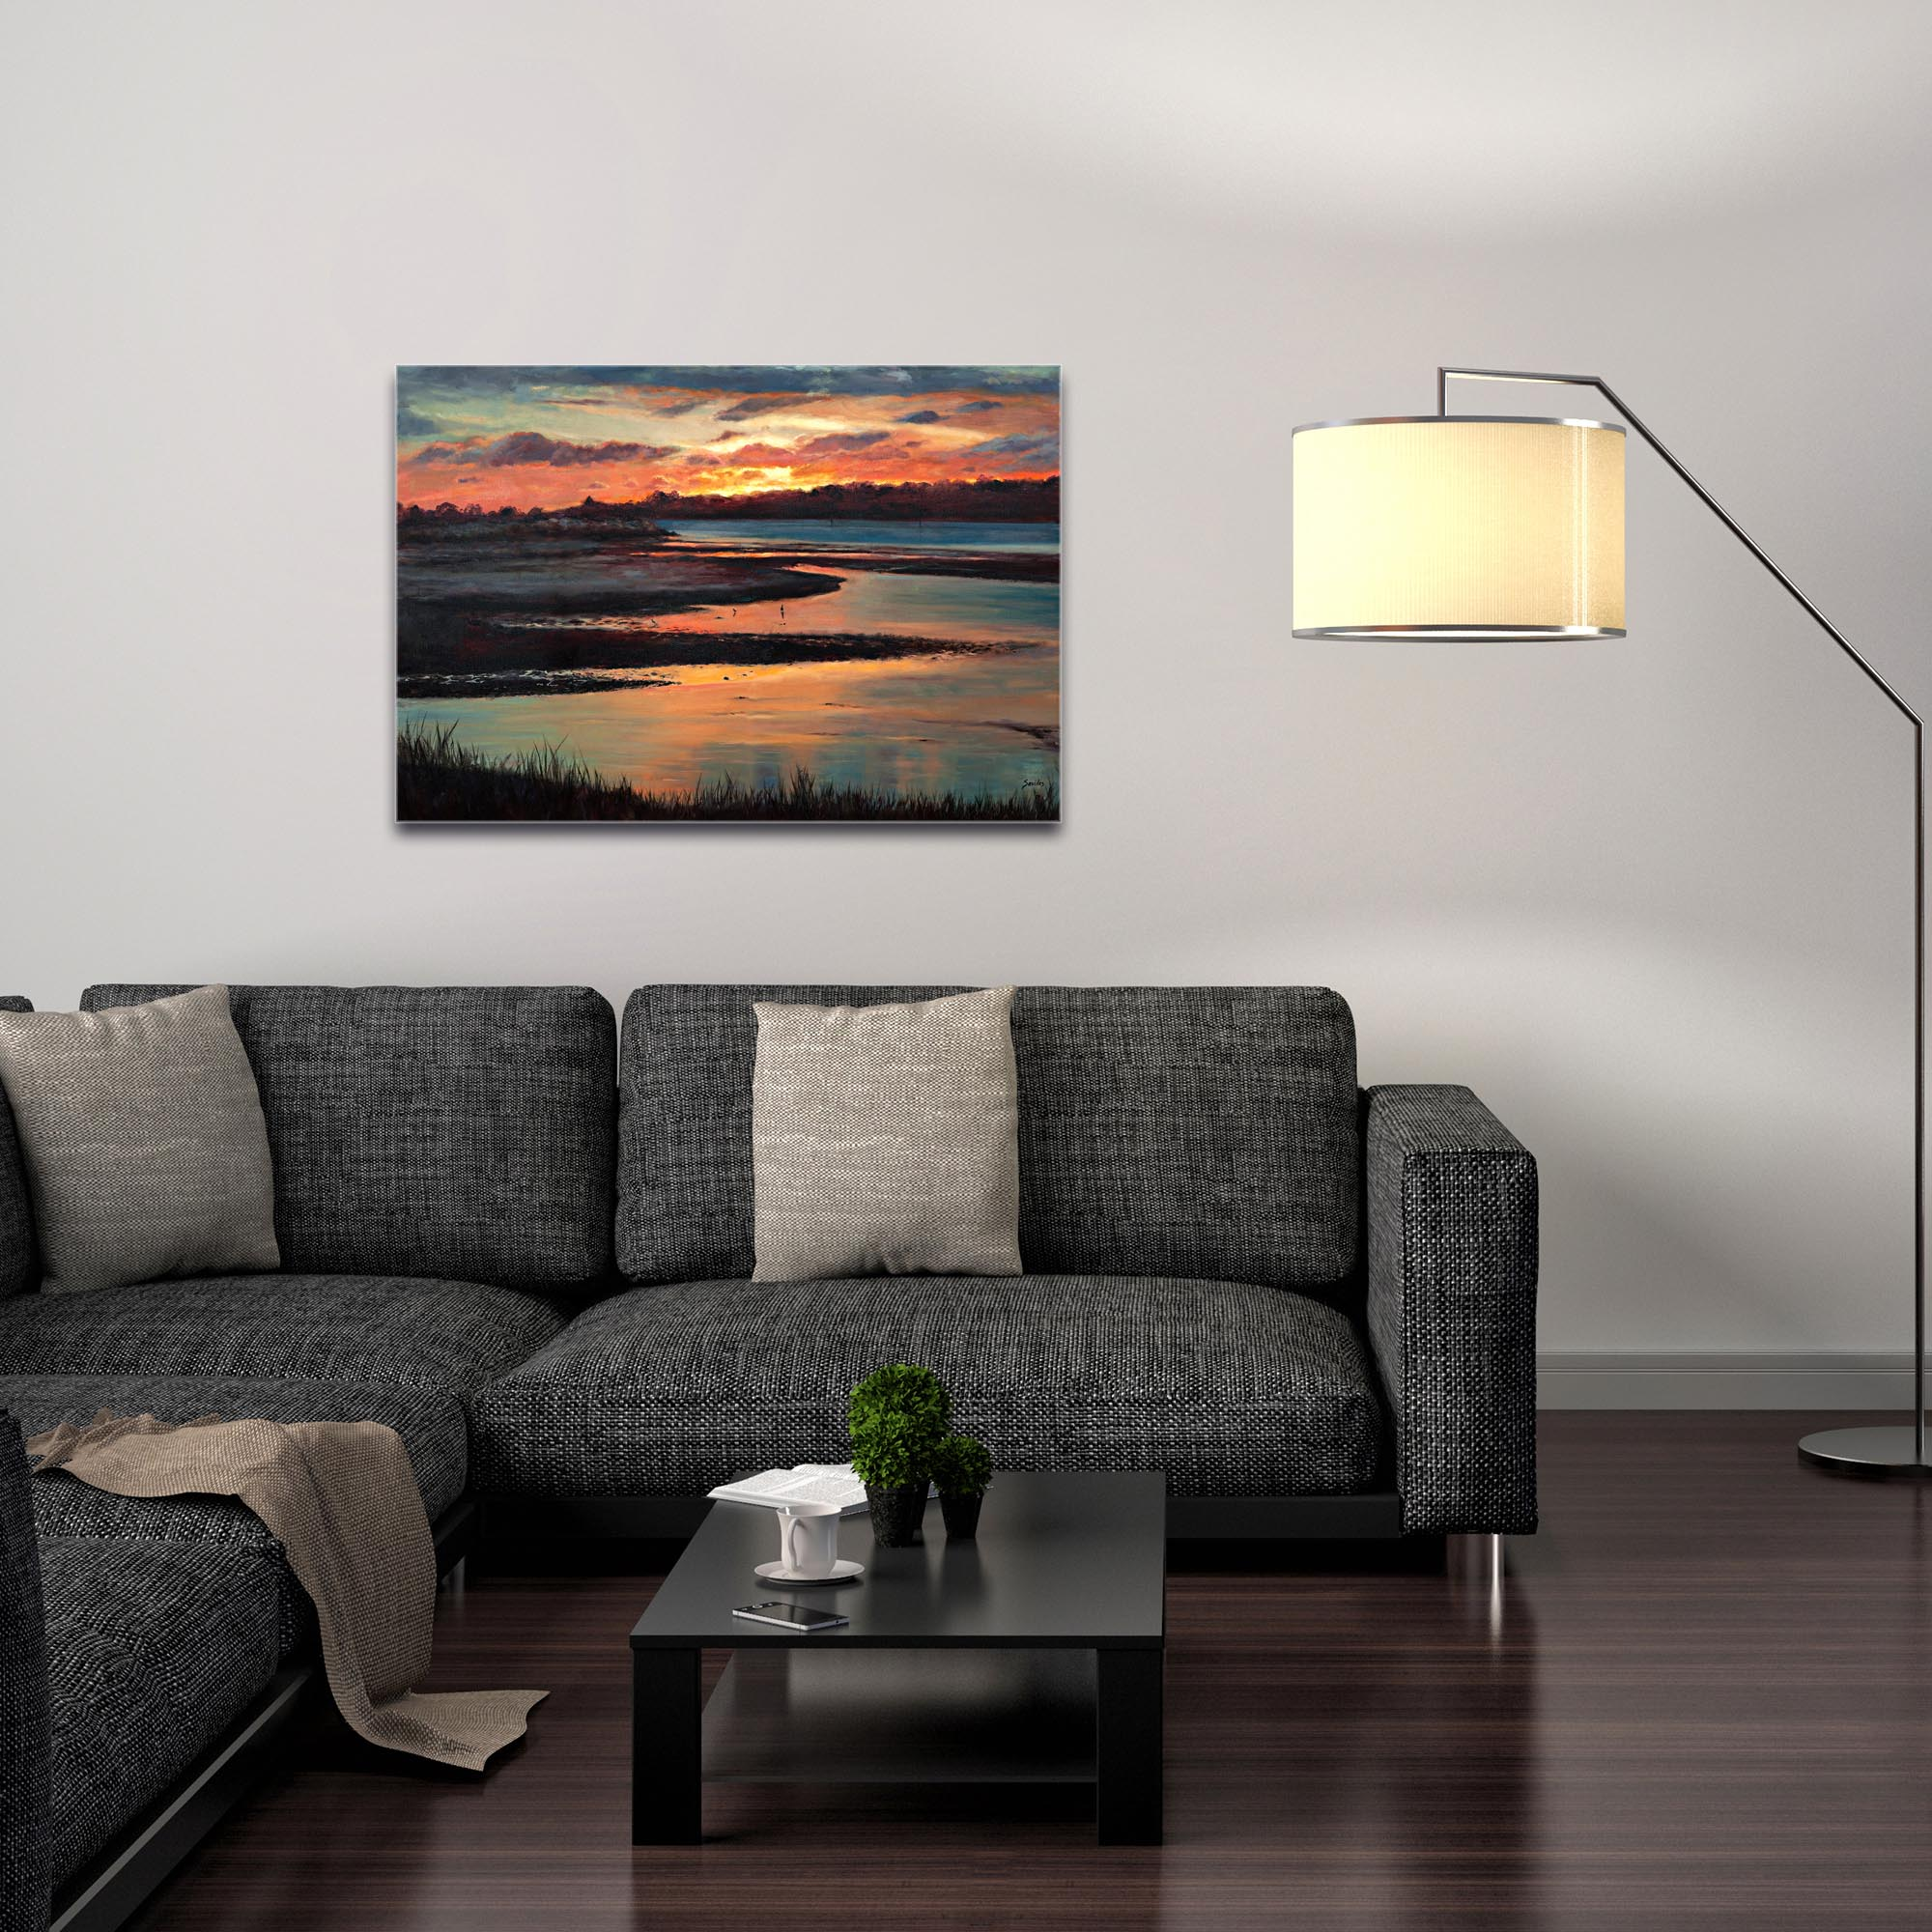 Traditional Wall Art 'Sunset' - River Landscape Decor on Metal or Plexiglass - Image 3